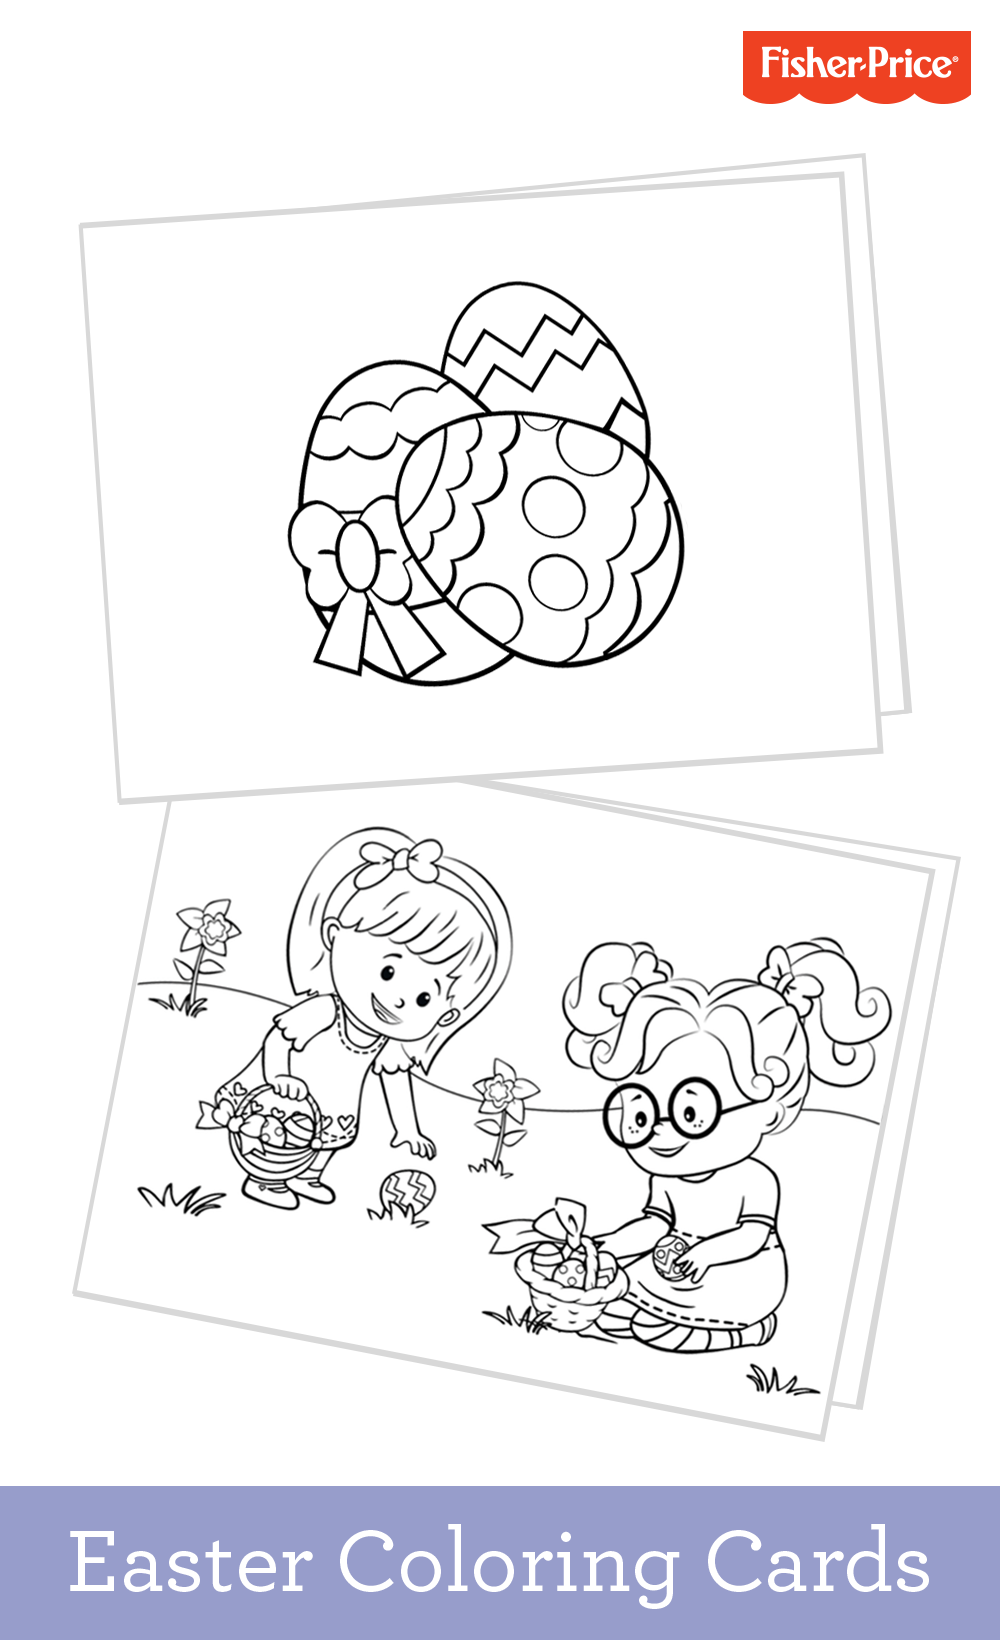 110 Coloring Pages Printables For Kids Ideas Coloring Pages Cool Coloring Pages Kids